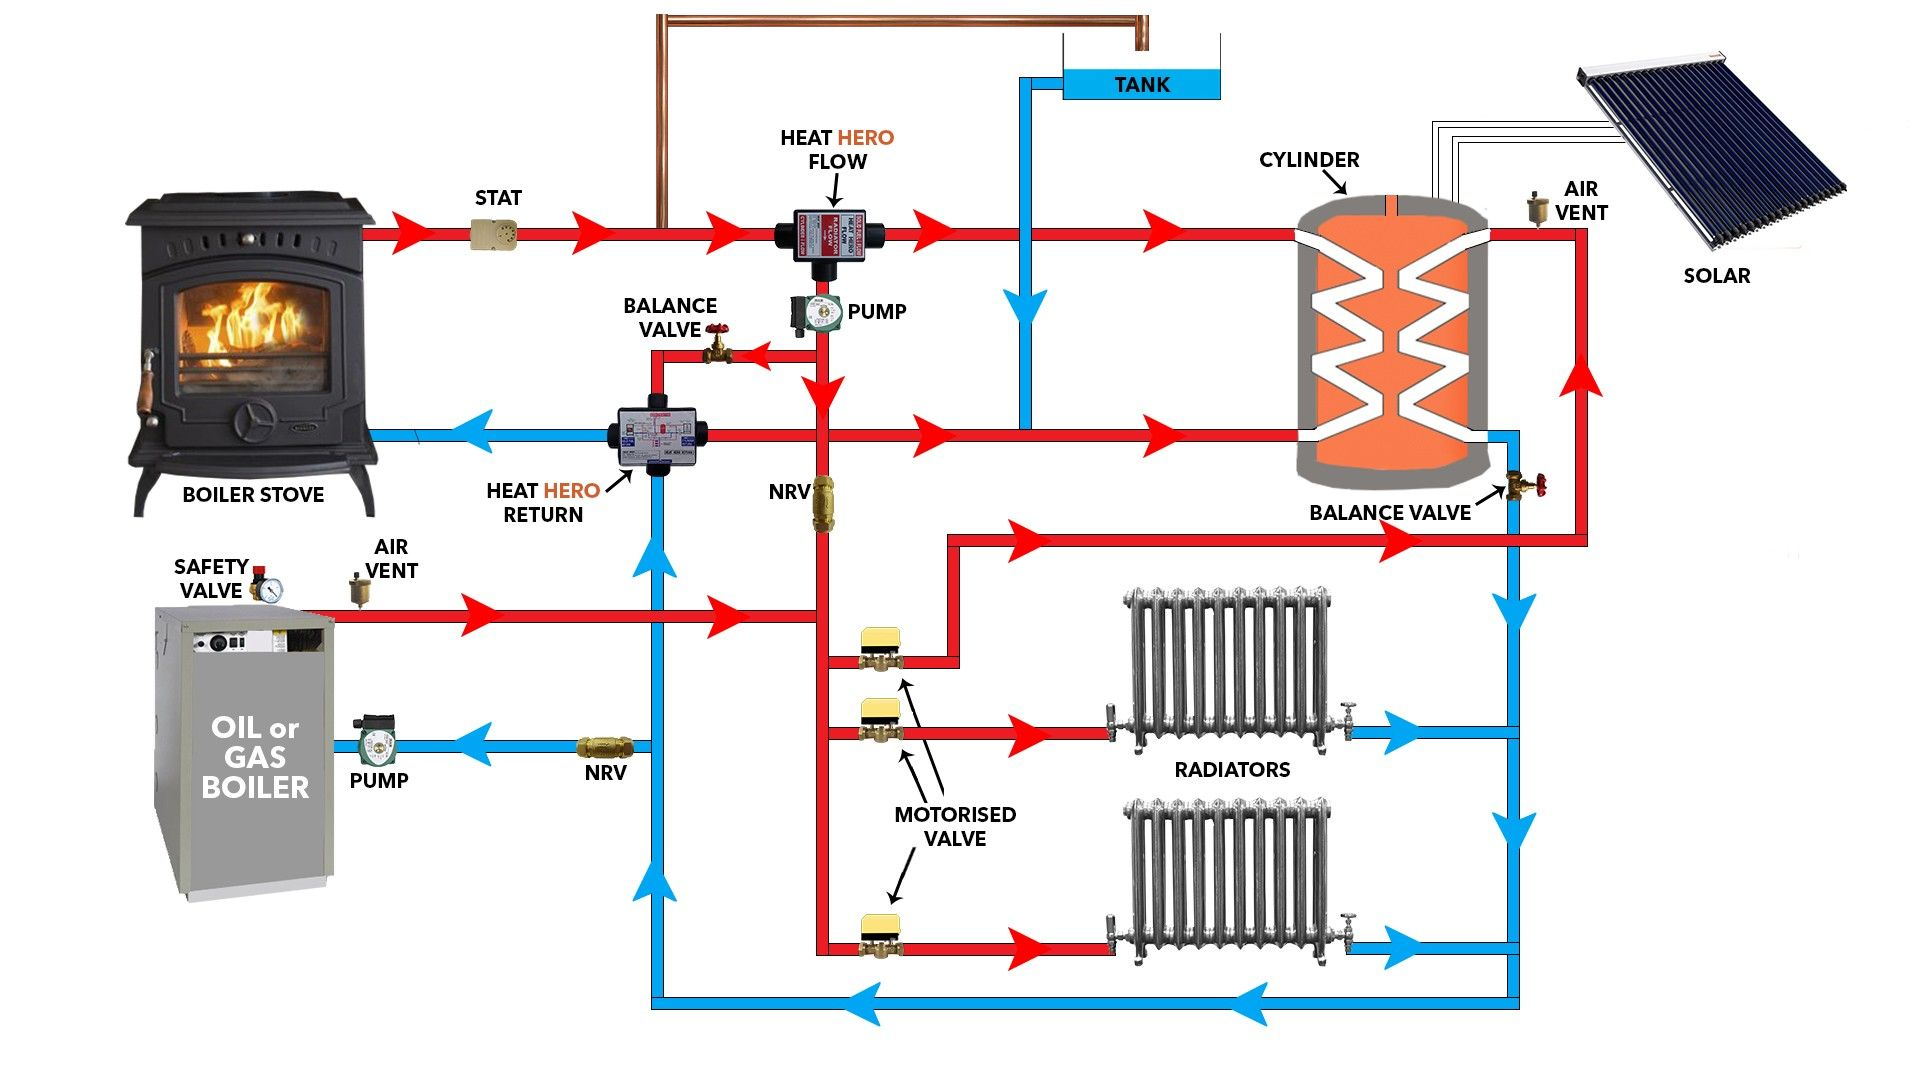 New Wiring Diagram For Solid Fuel Central Heating System